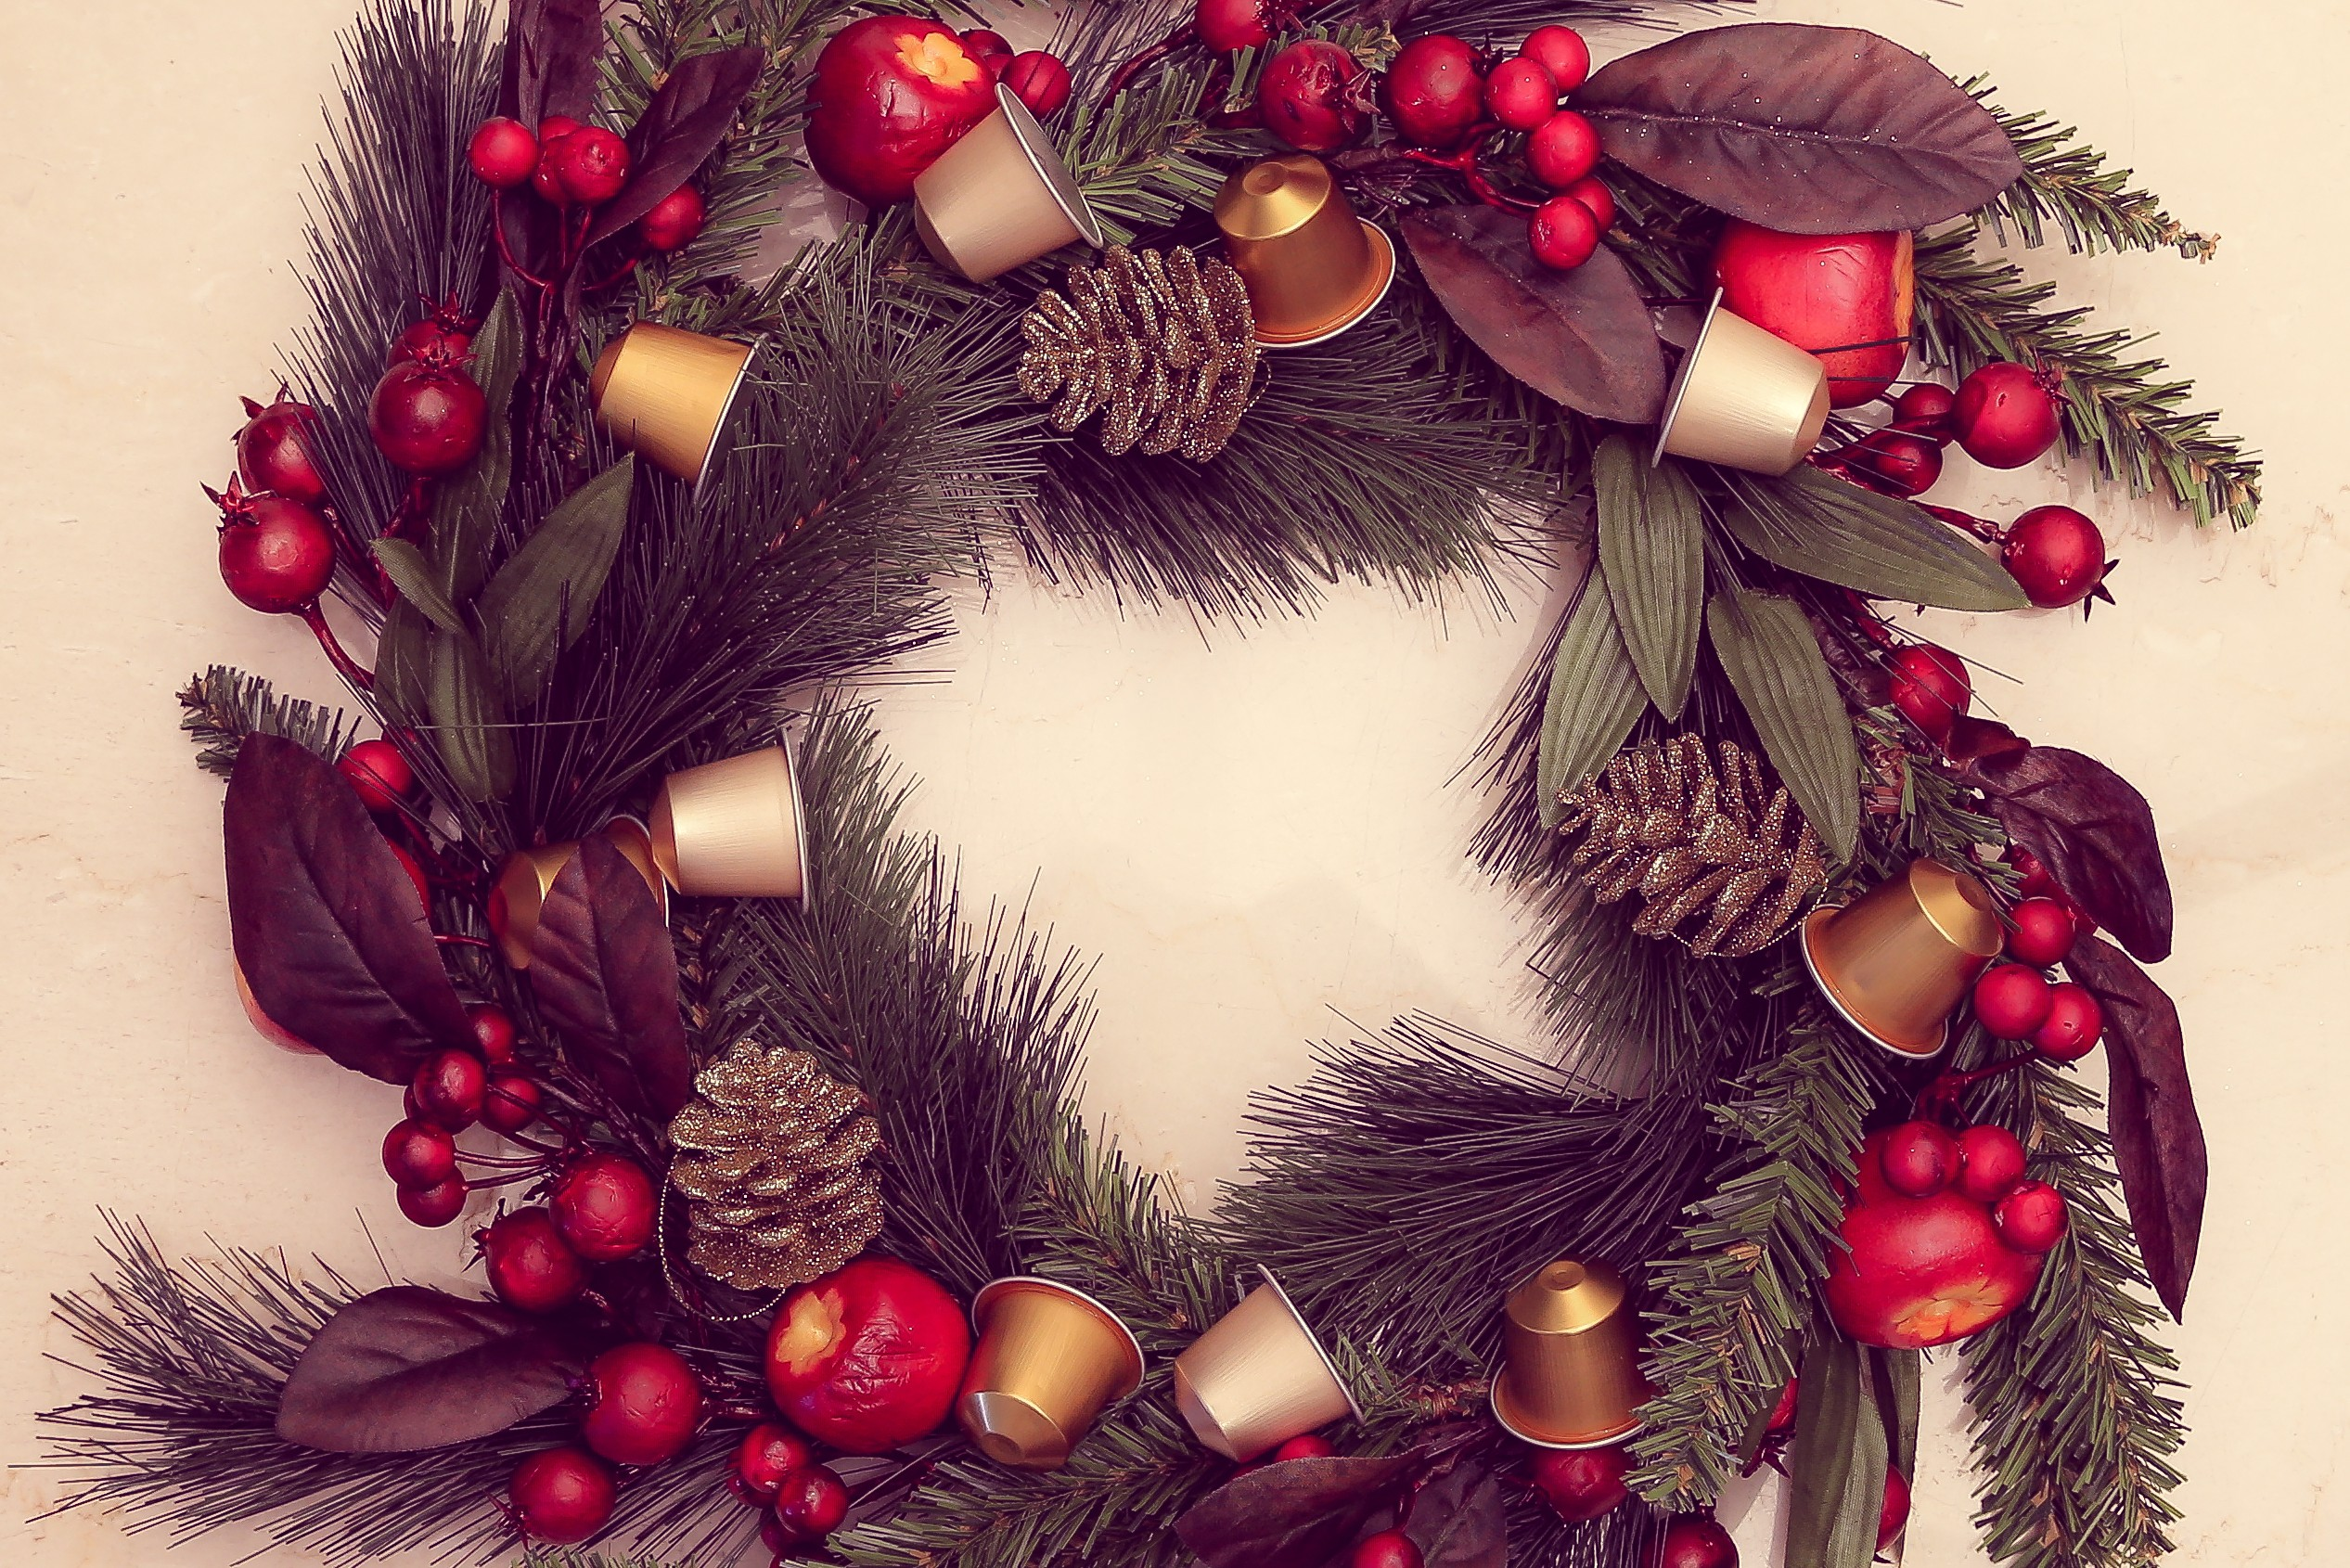 Top 10 Wellbeing Gifts For Christmas